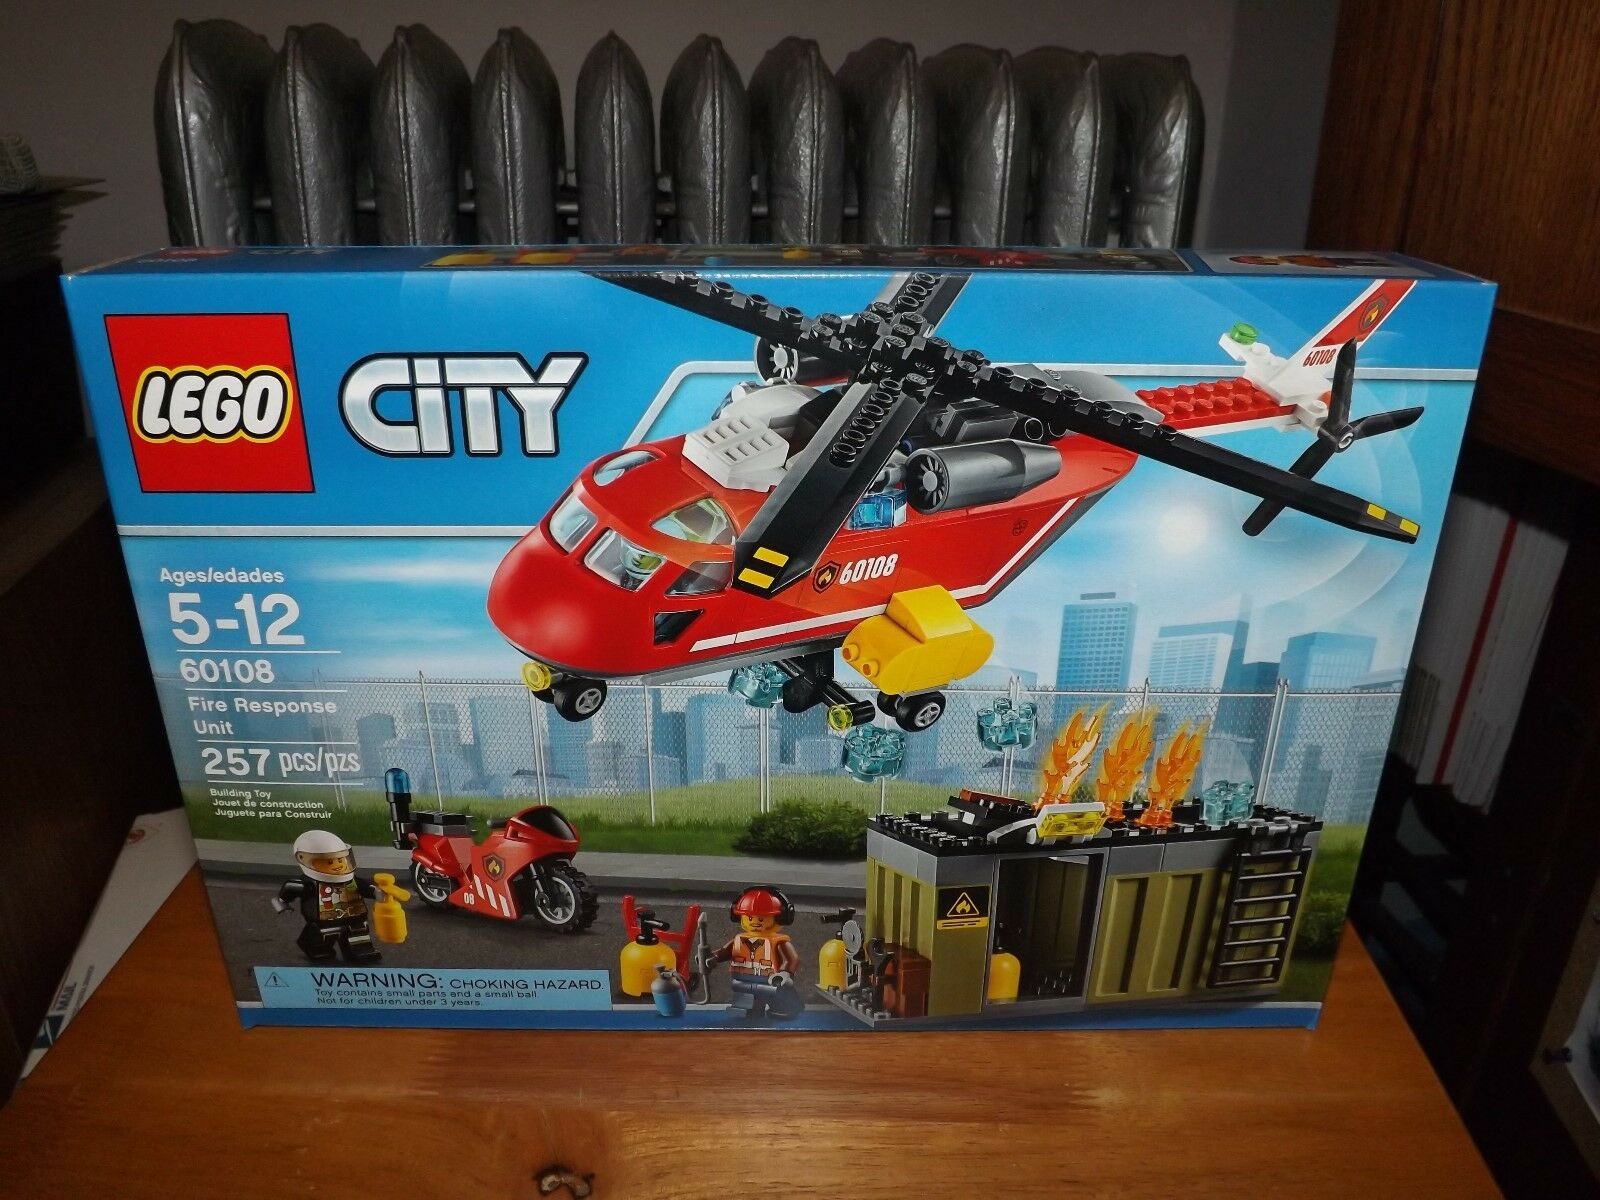 LEGO, CITY, FIRE RESPONSE UNIT, KIT  60108, 257 PIECES, NEW IN BOX, 2016